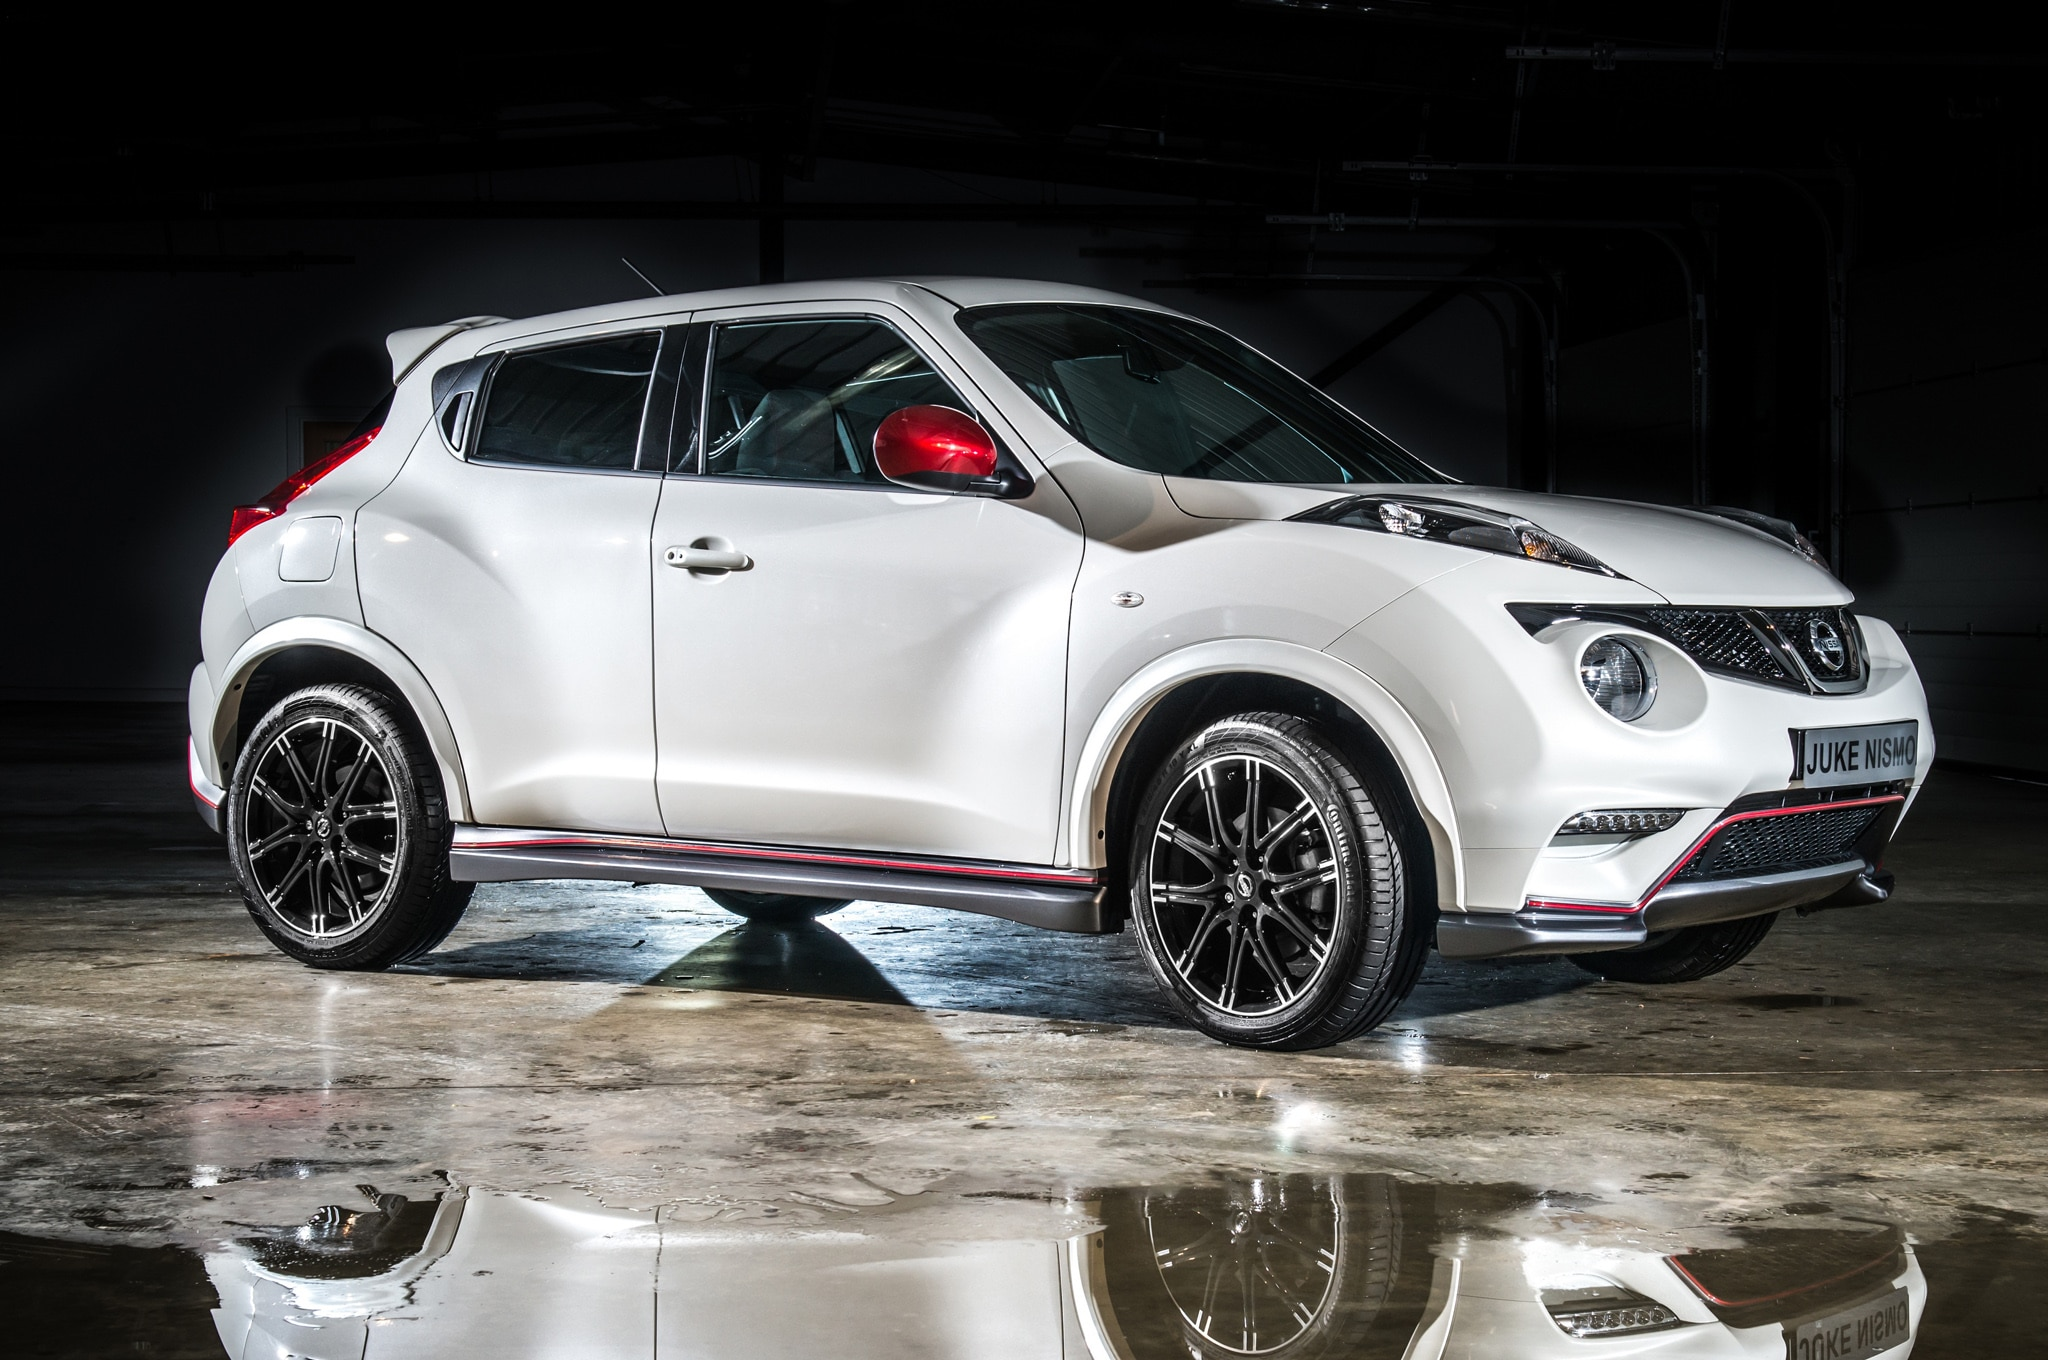 2013 Nissan Juke Nismo Front Three Quarters 21